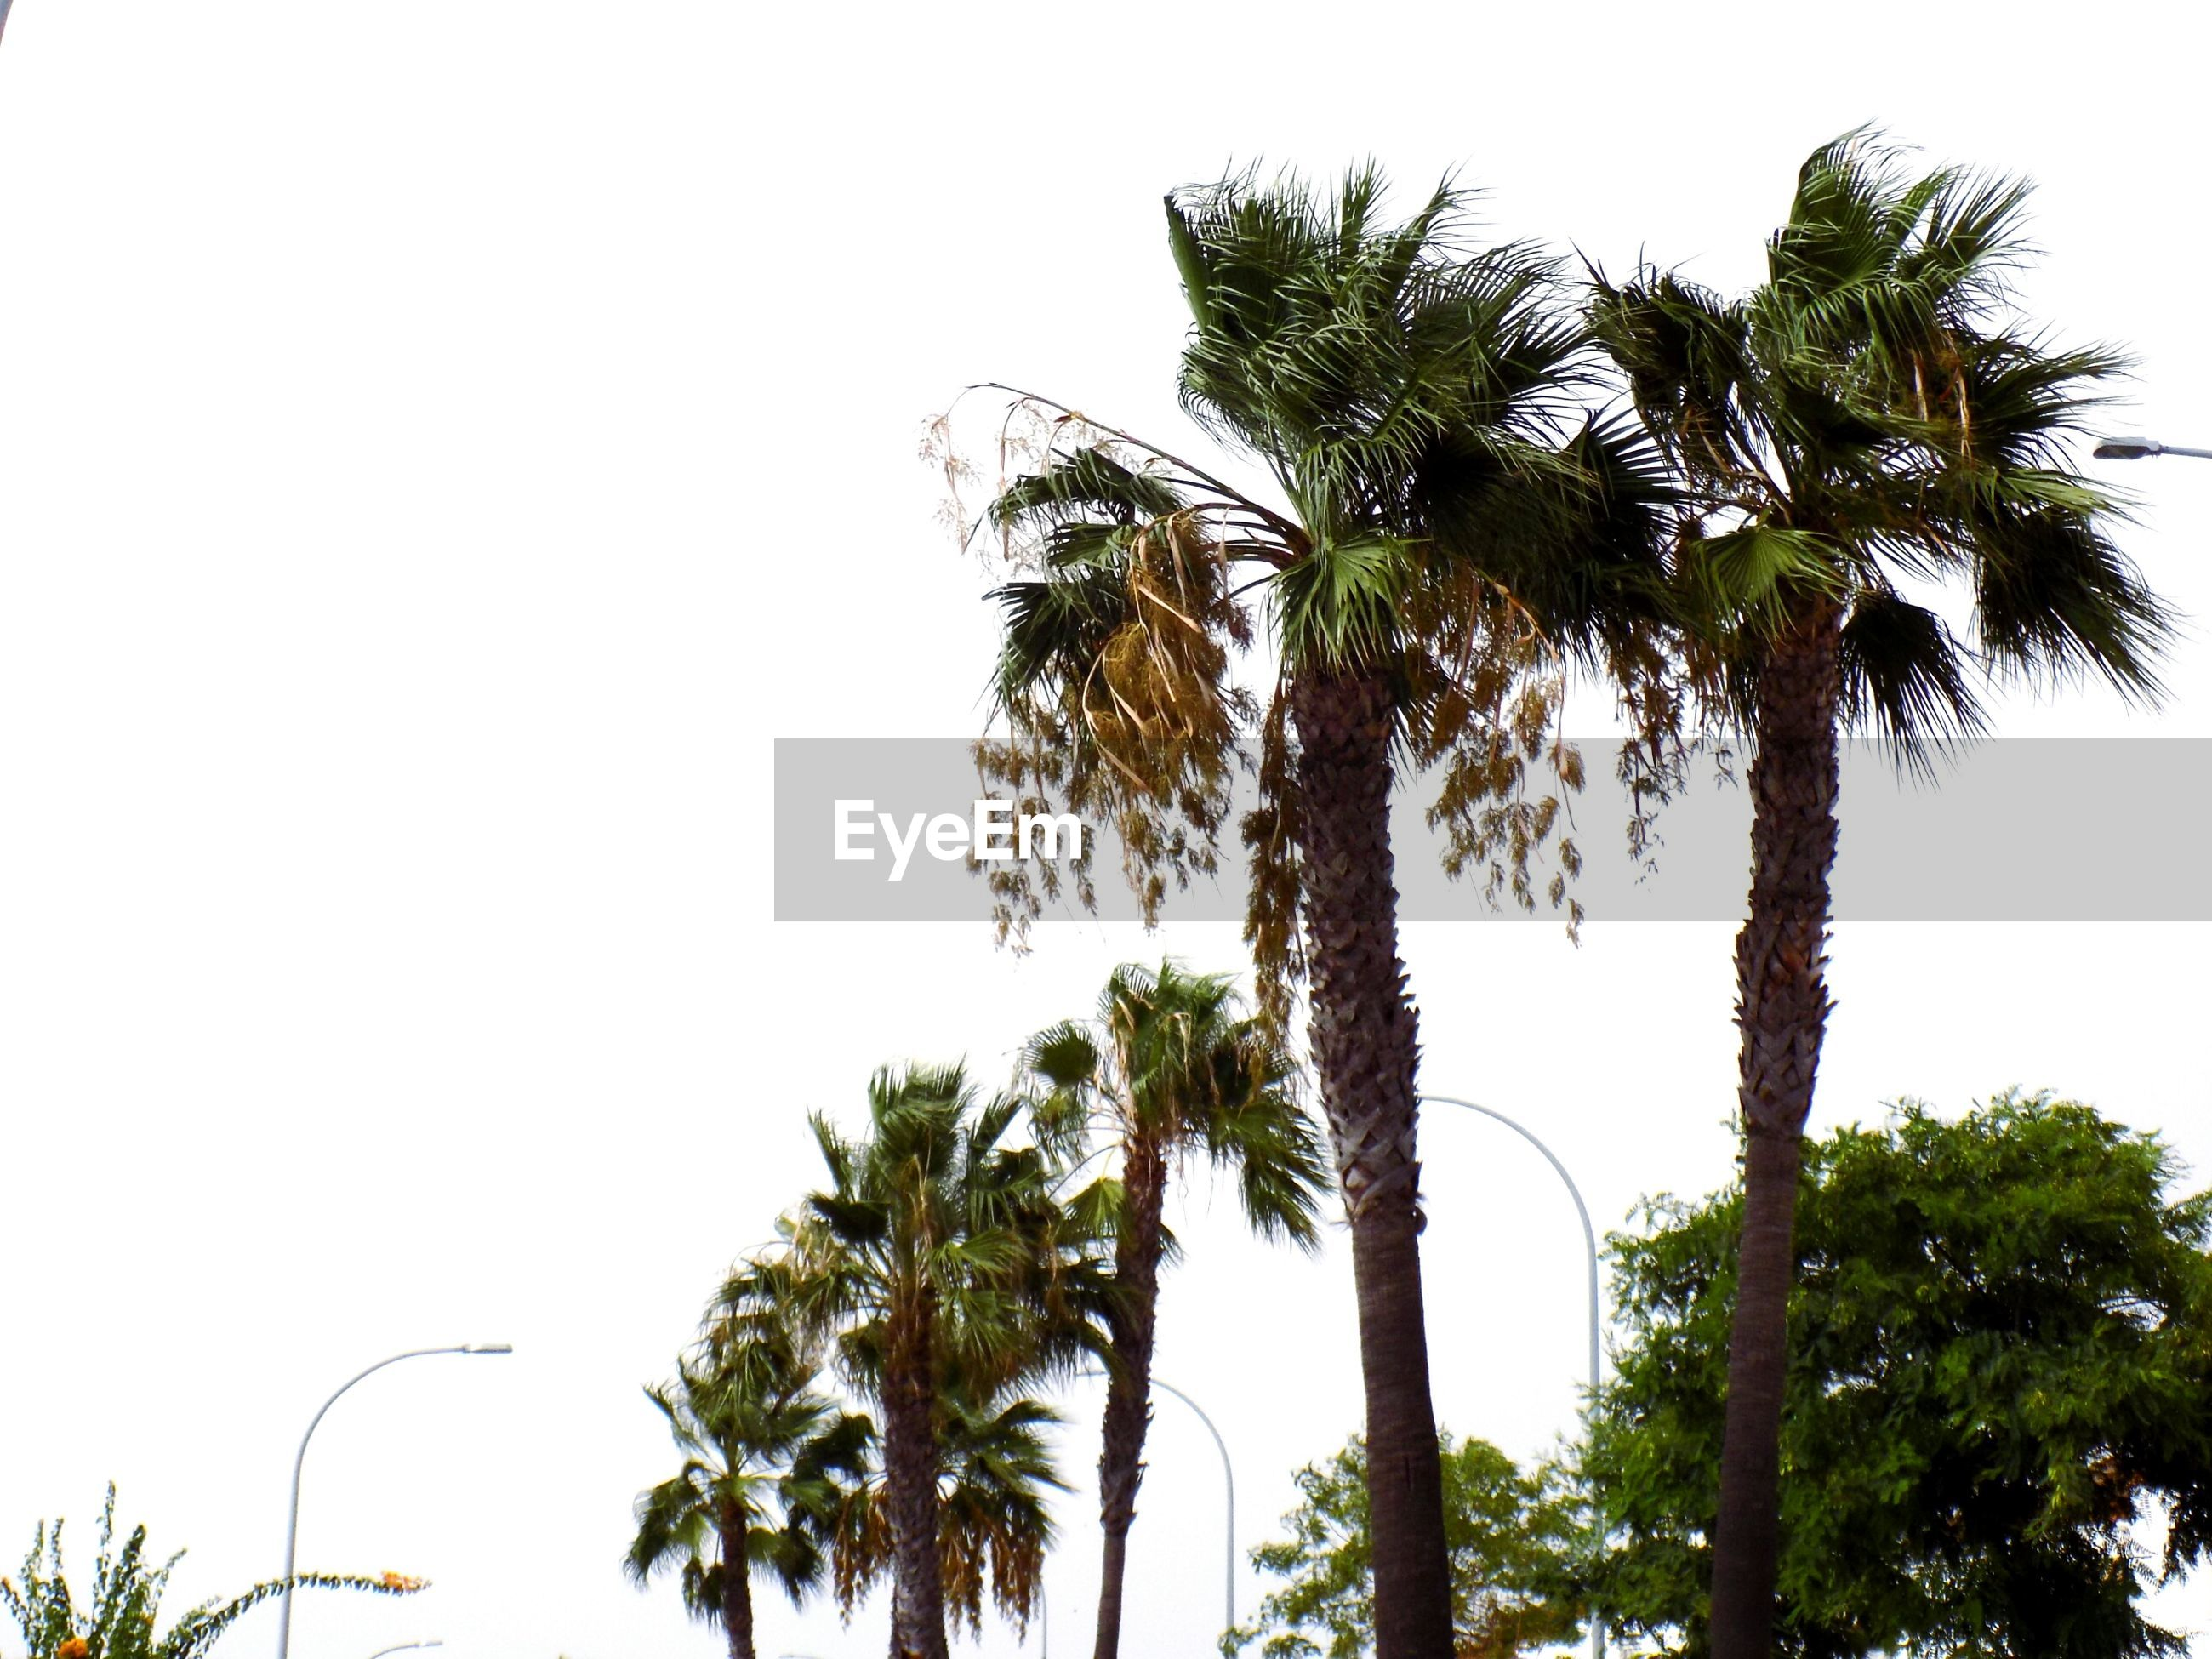 tree, palm tree, low angle view, clear sky, growth, tranquility, nature, beauty in nature, tree trunk, branch, copy space, sky, tranquil scene, scenics, silhouette, coconut palm tree, tall - high, outdoors, no people, day